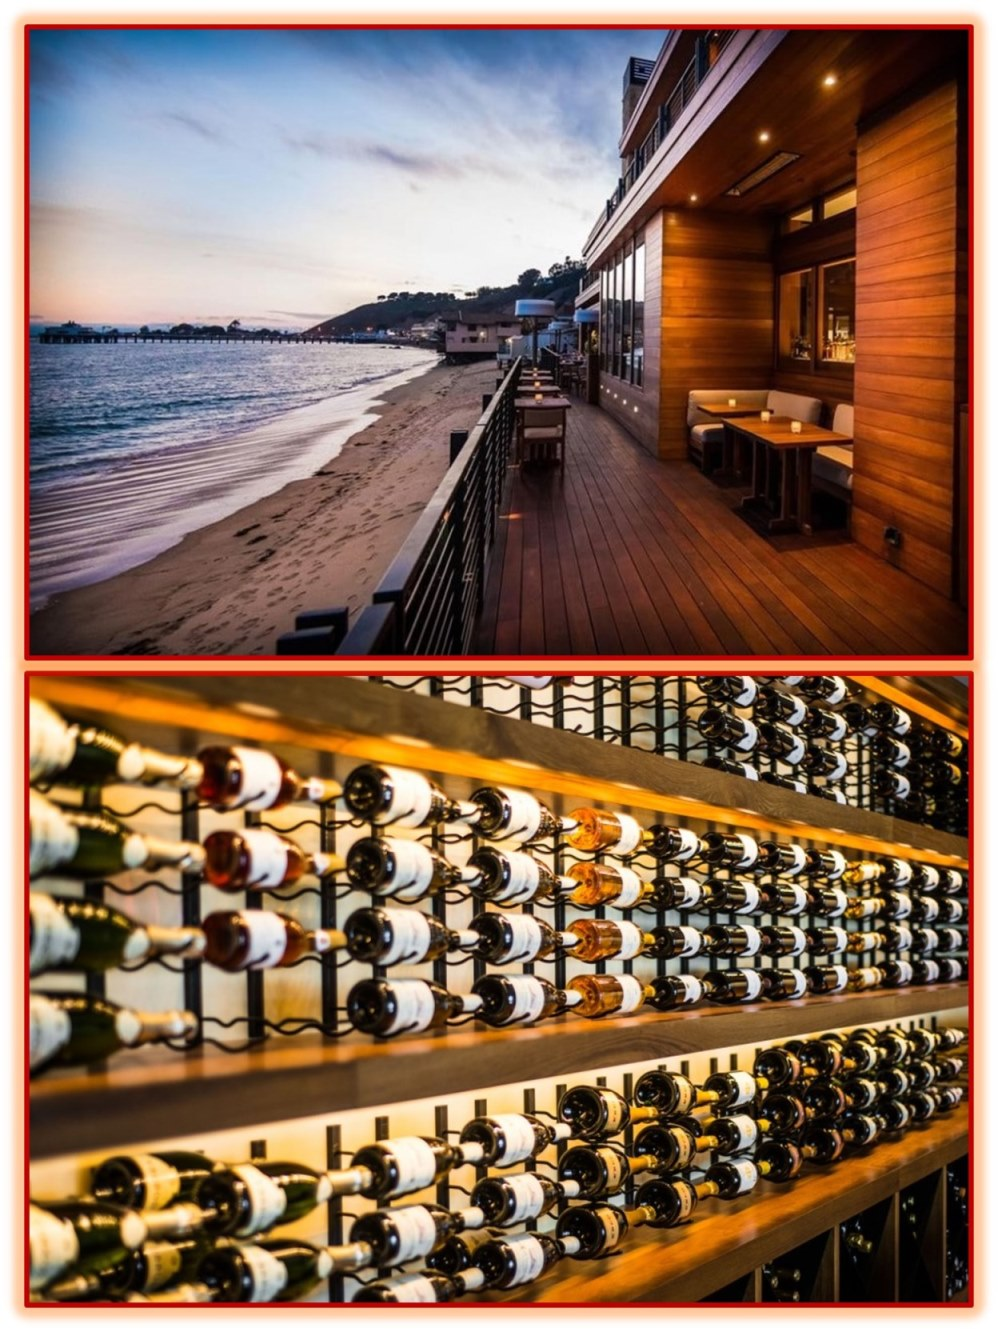 These Contemporary Wine Racks were Created by a Wine Cellar Builder to Boost the Wine Sales of a Commercial Establishment